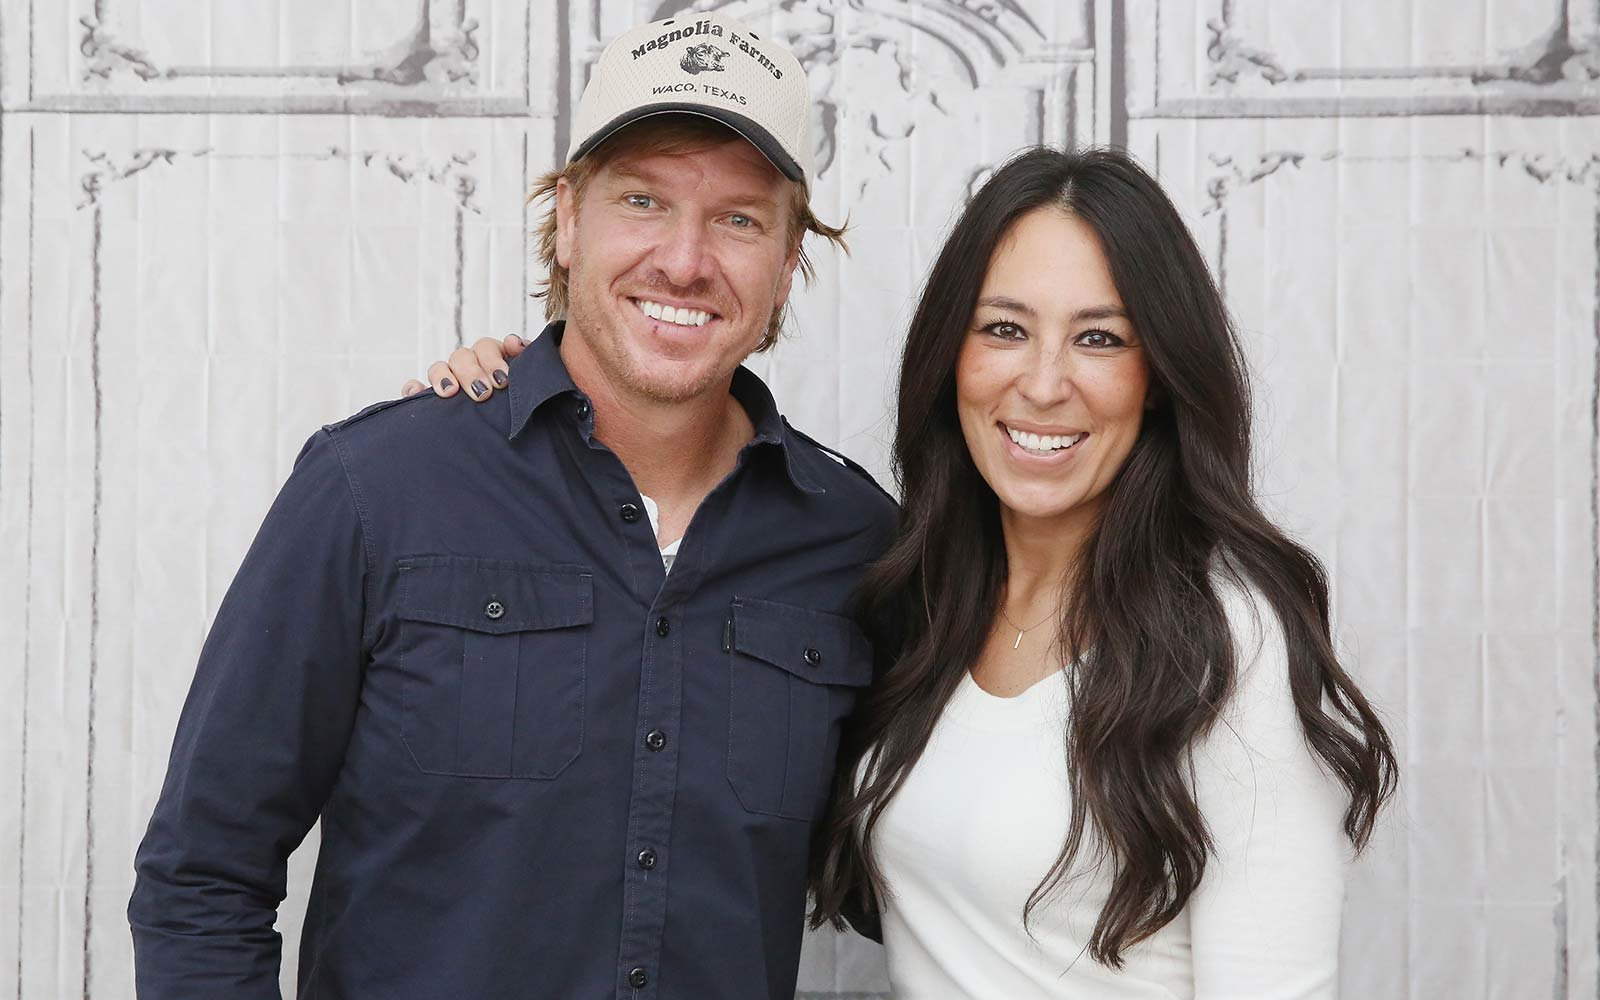 Chip and Joanna Gaines Fixer Upper Magnolia Productions Target merchandise